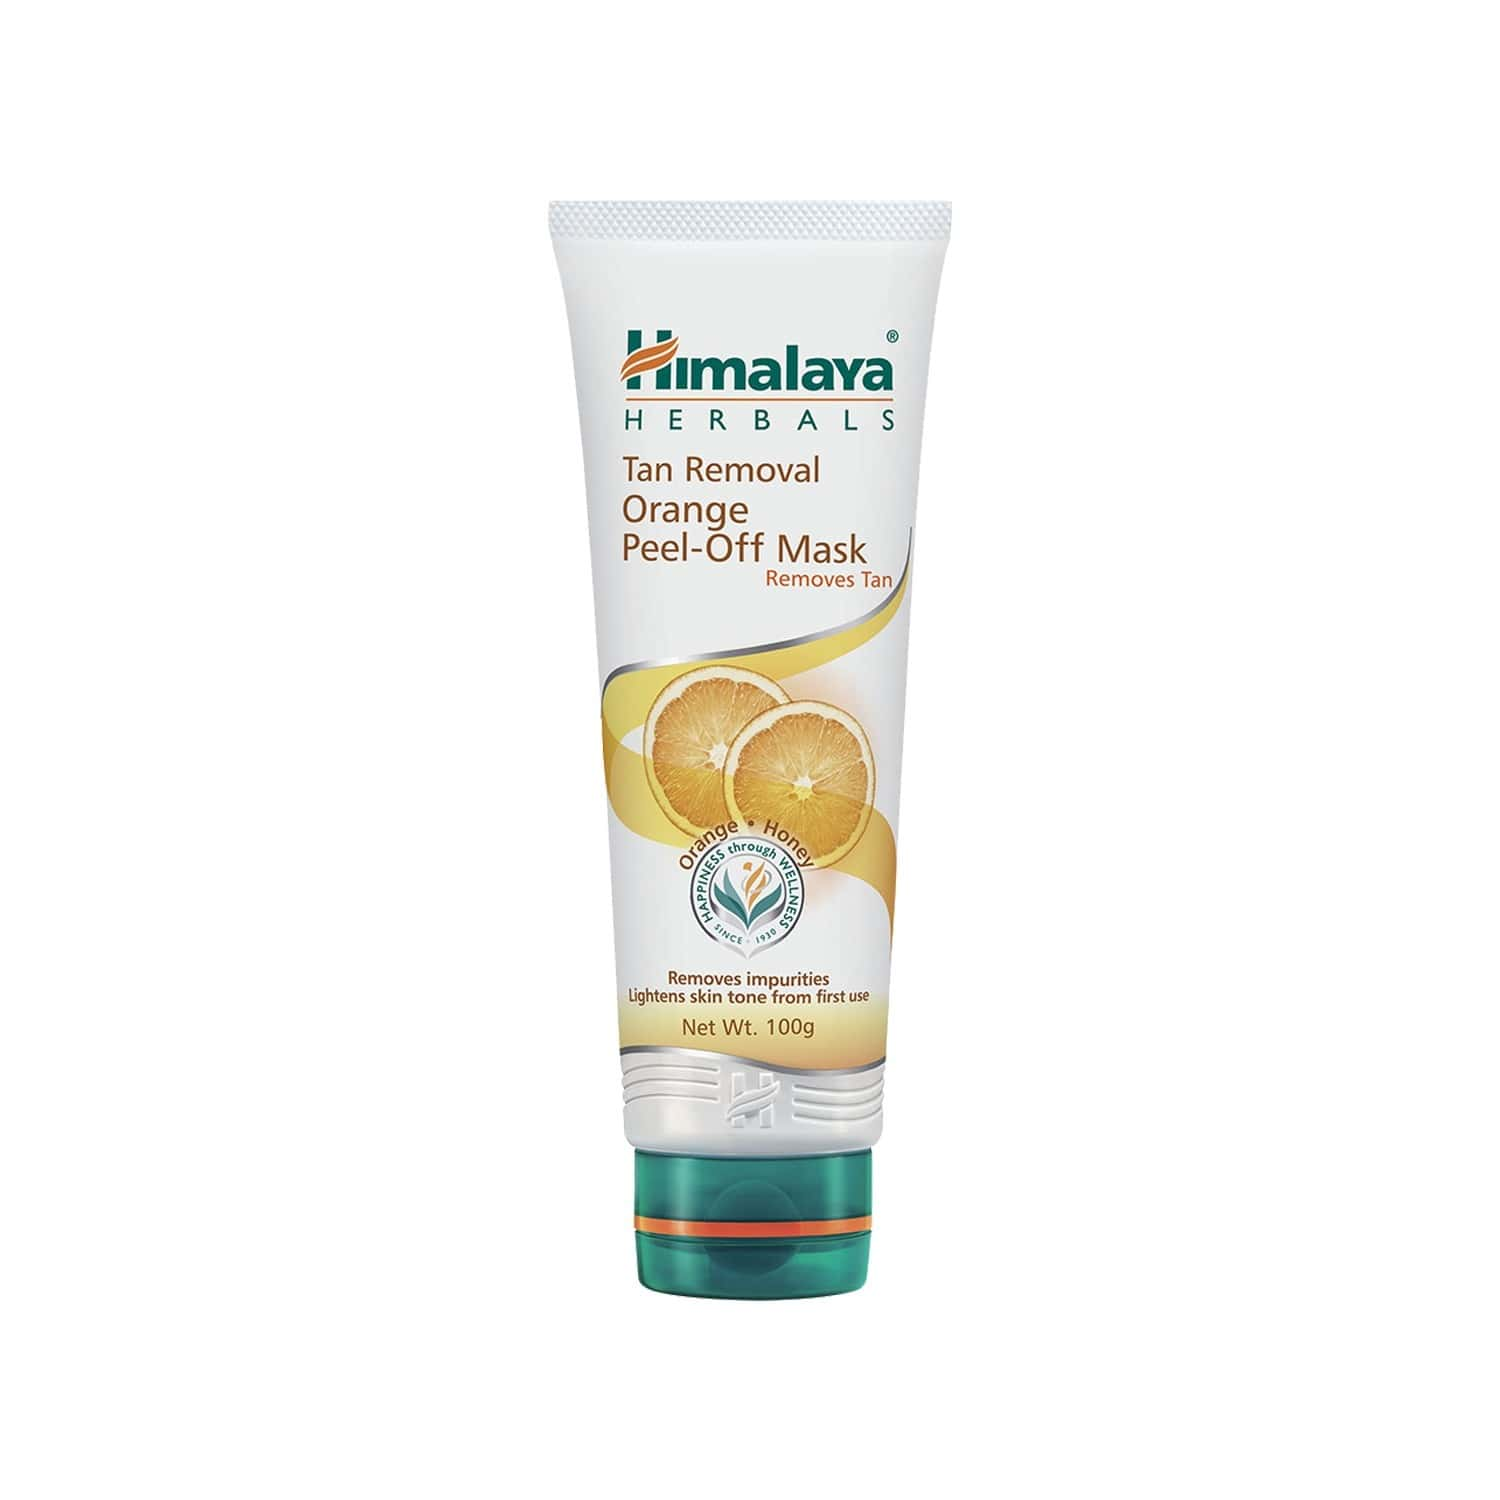 Himalaya Tan Removal Orange Peel-off Mask 100g